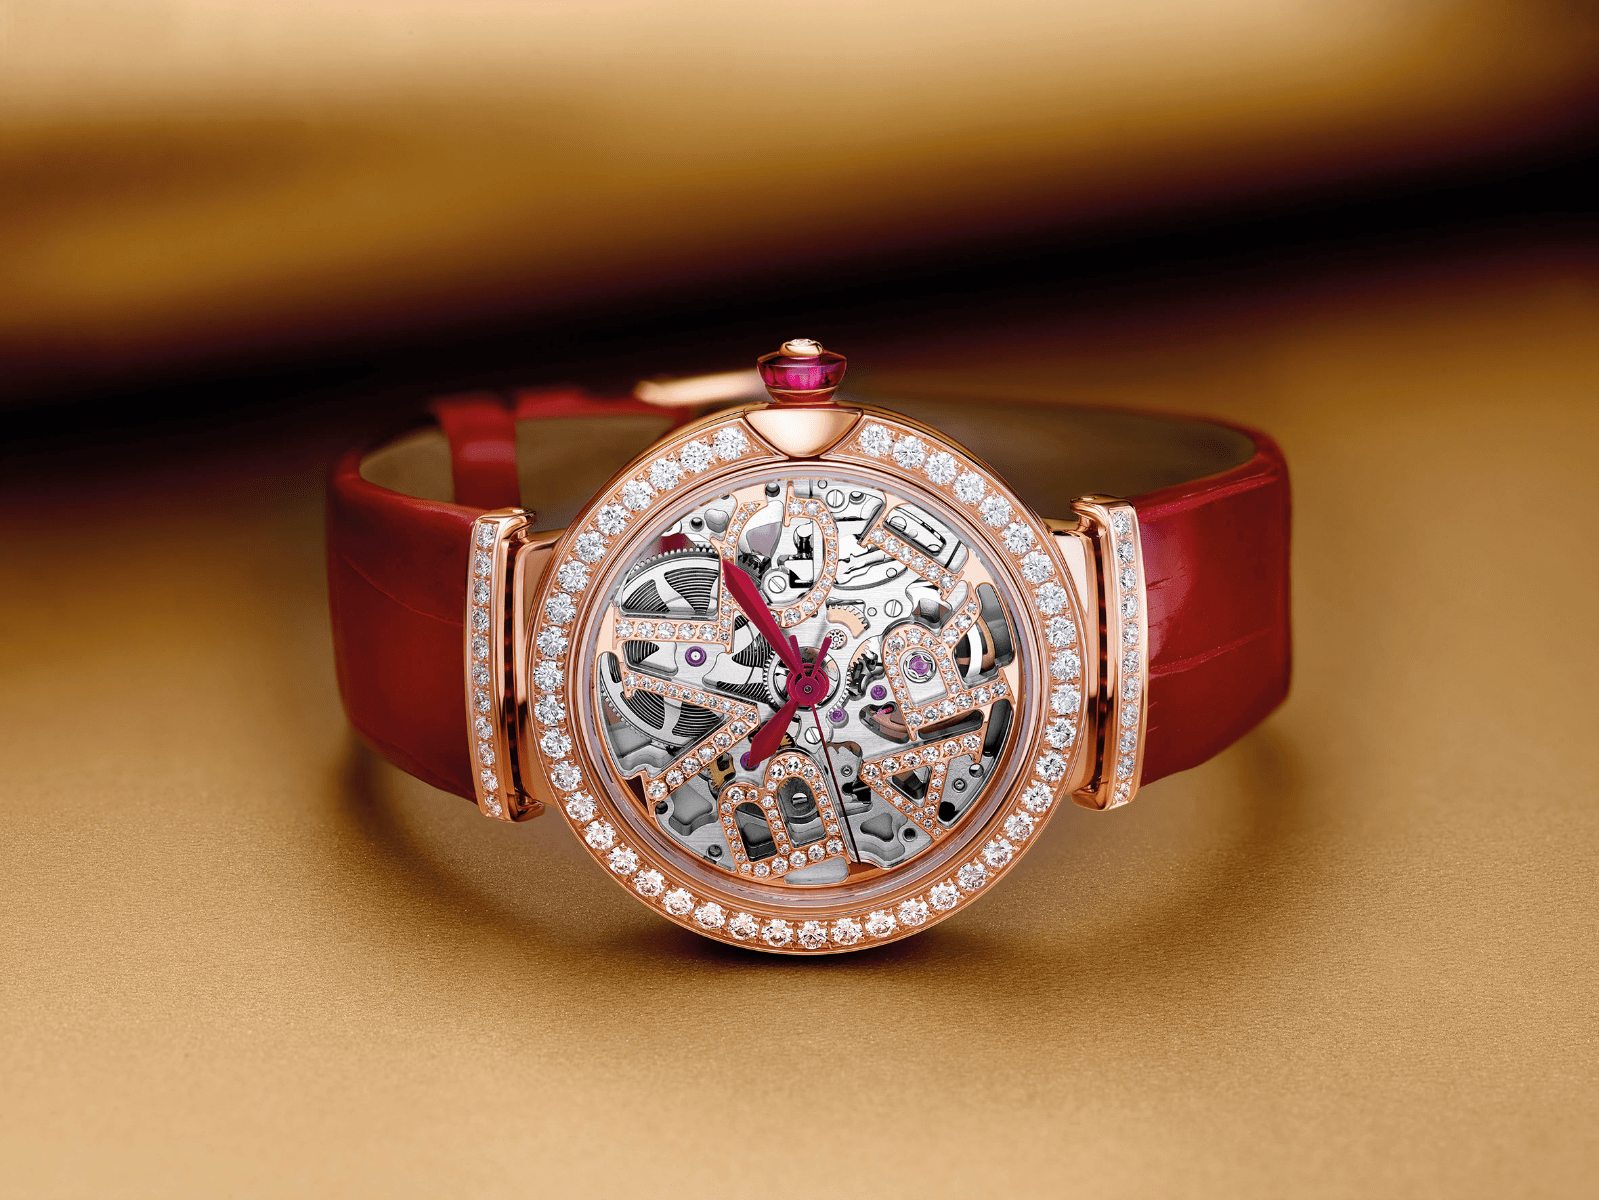 Bulgari Lvcea Skeleton (Photo: Bulgari)